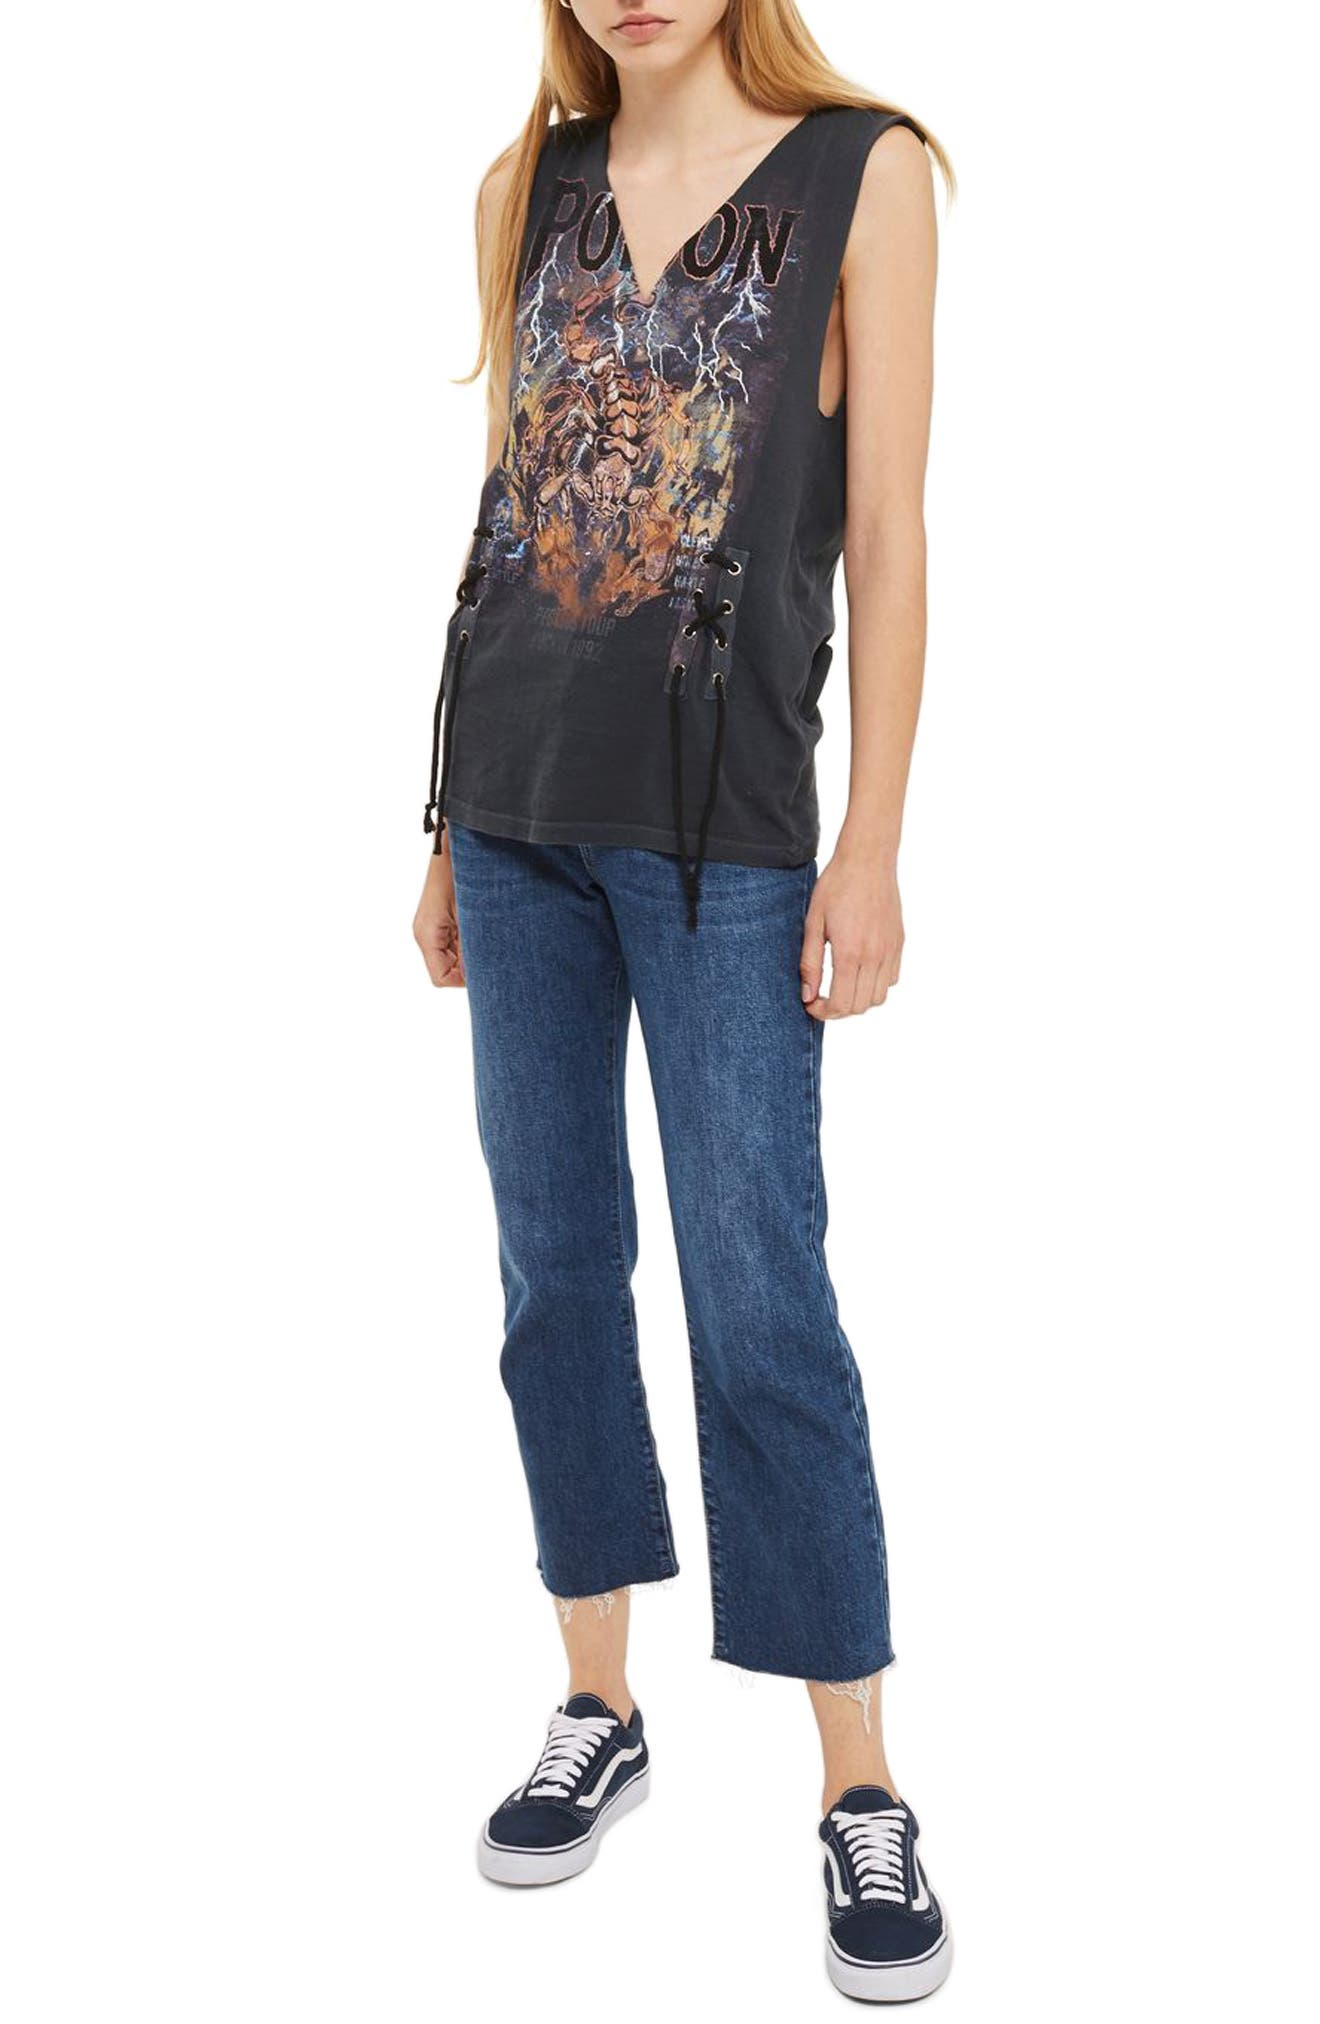 Topshop Pretty Poison Band Graphic Tee